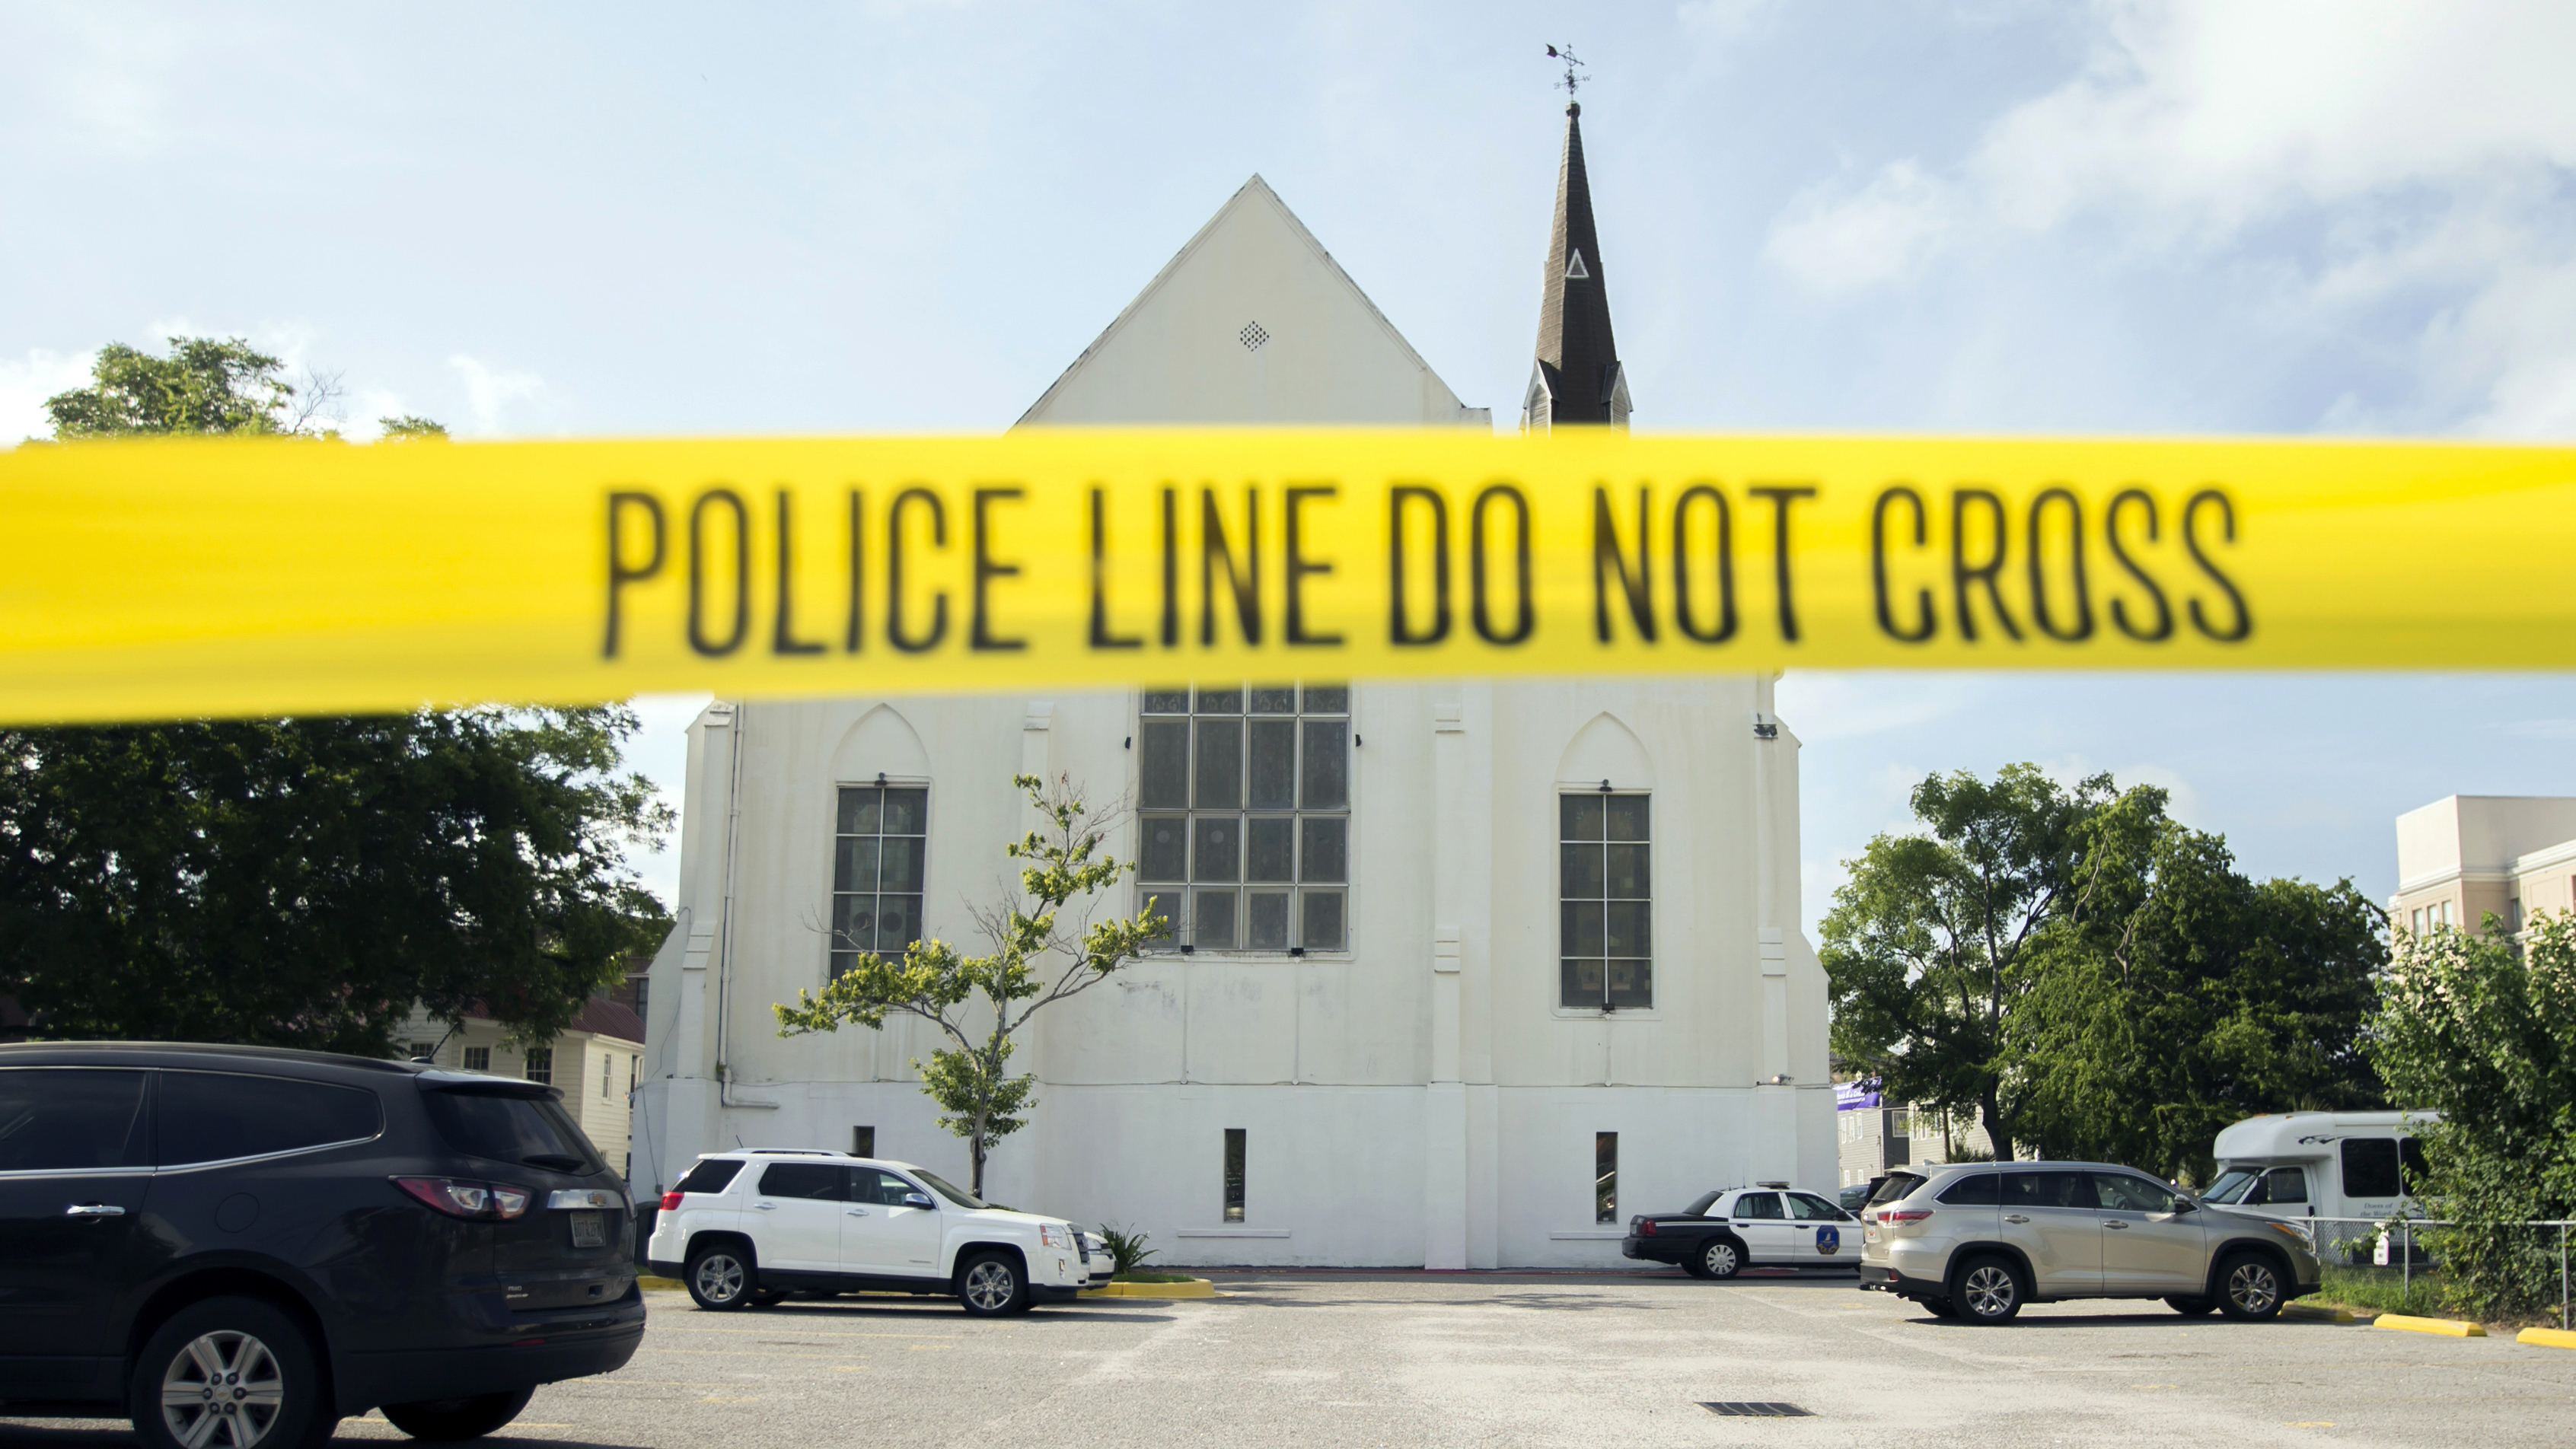 In this June 19, 2015 file photo, police tape surrounds the parking lot behind the AME Emanuel Church as FBI forensic experts work the crime scene, in Charleston, S.C. Families of nine victims killed in a racist attack at a Black South Carolina church have reached a settlement with the Justice Department over a faulty background check that allowed Dylann Roof to purchase the gun he used in the 2015 massacre.